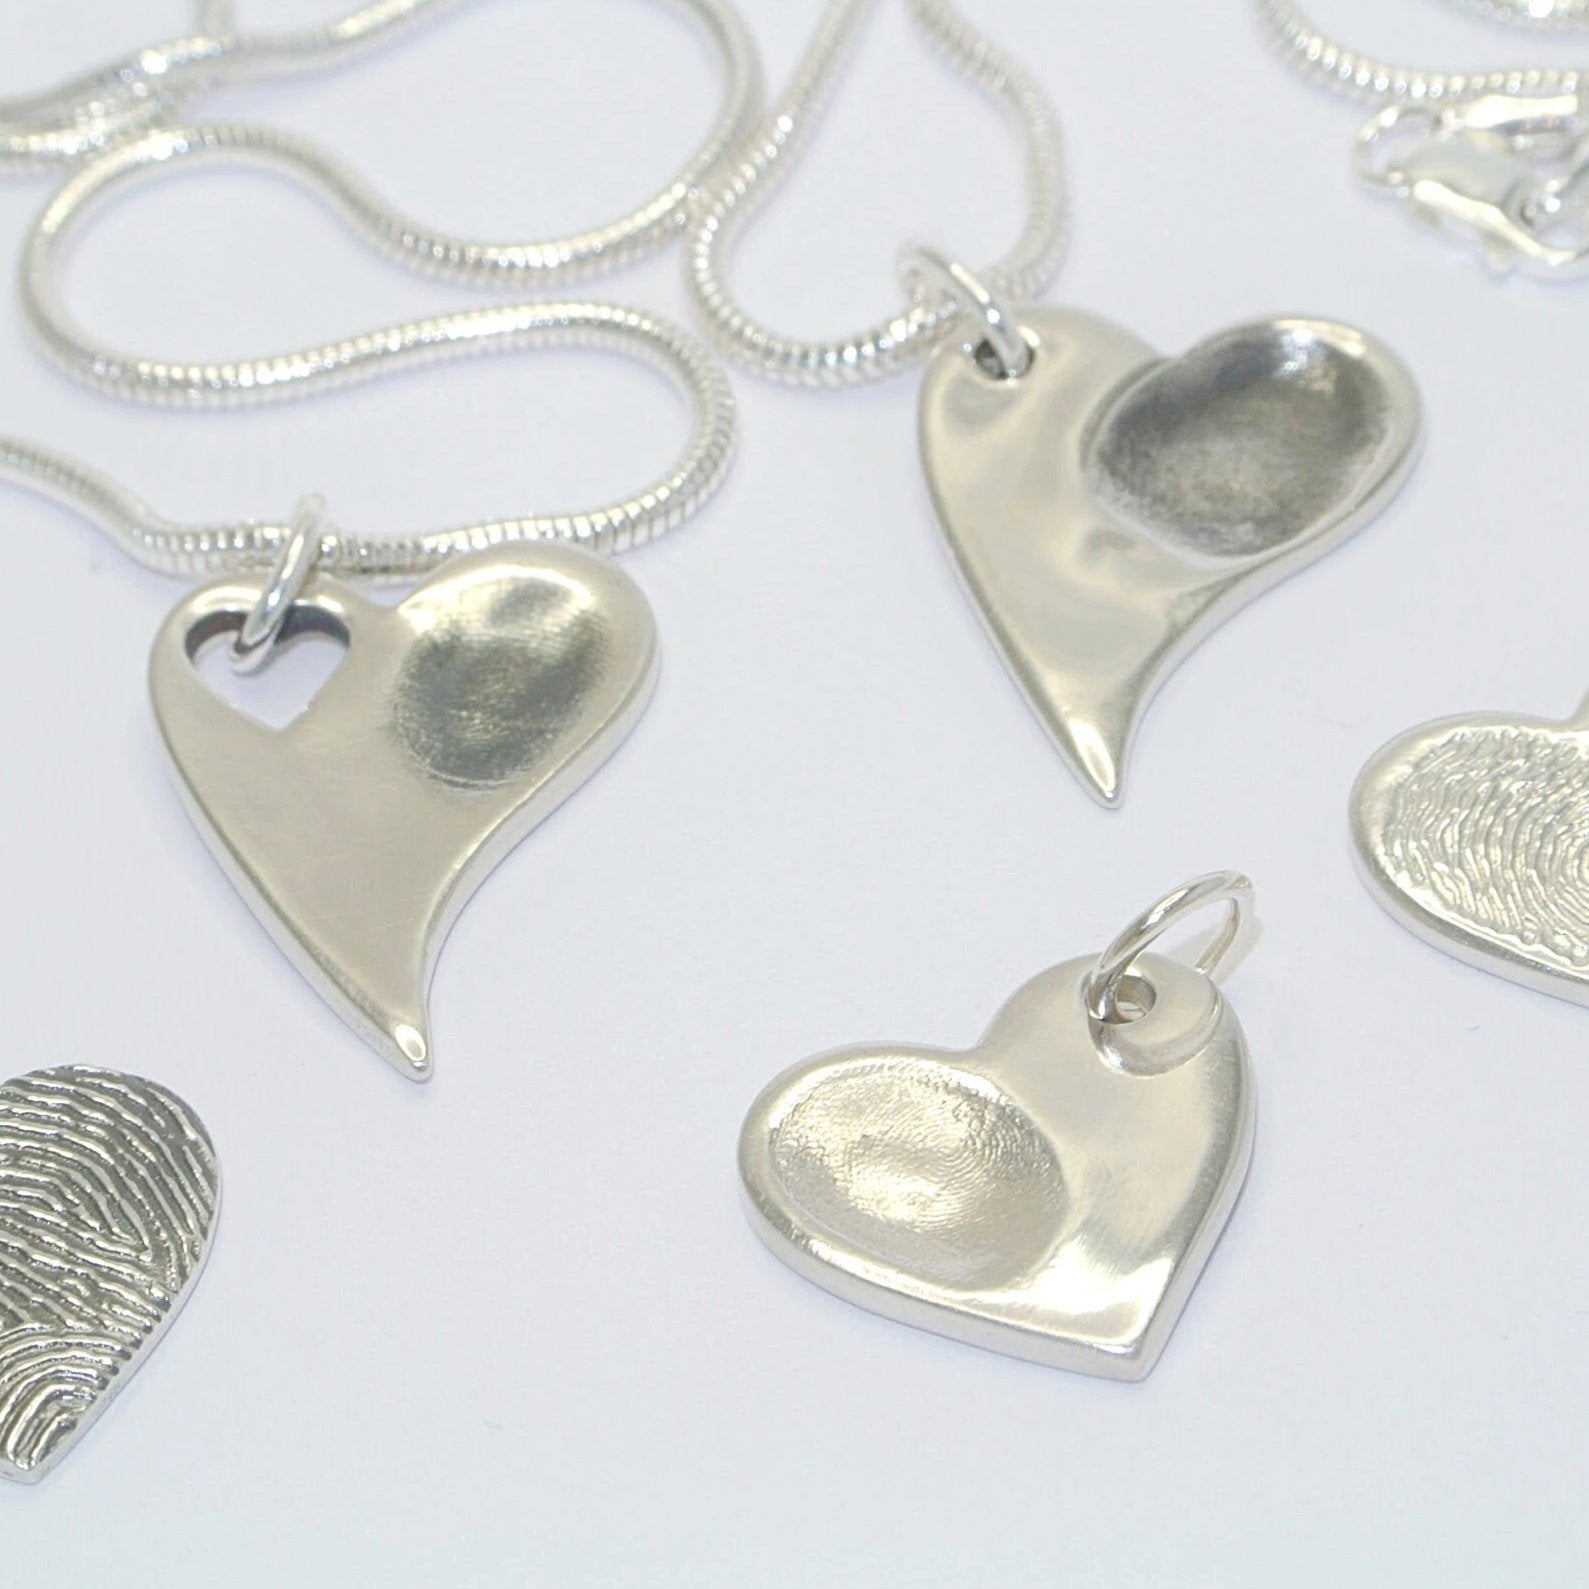 Make Your Own Sterling Silver Fingerprint Jewellery Party At Home